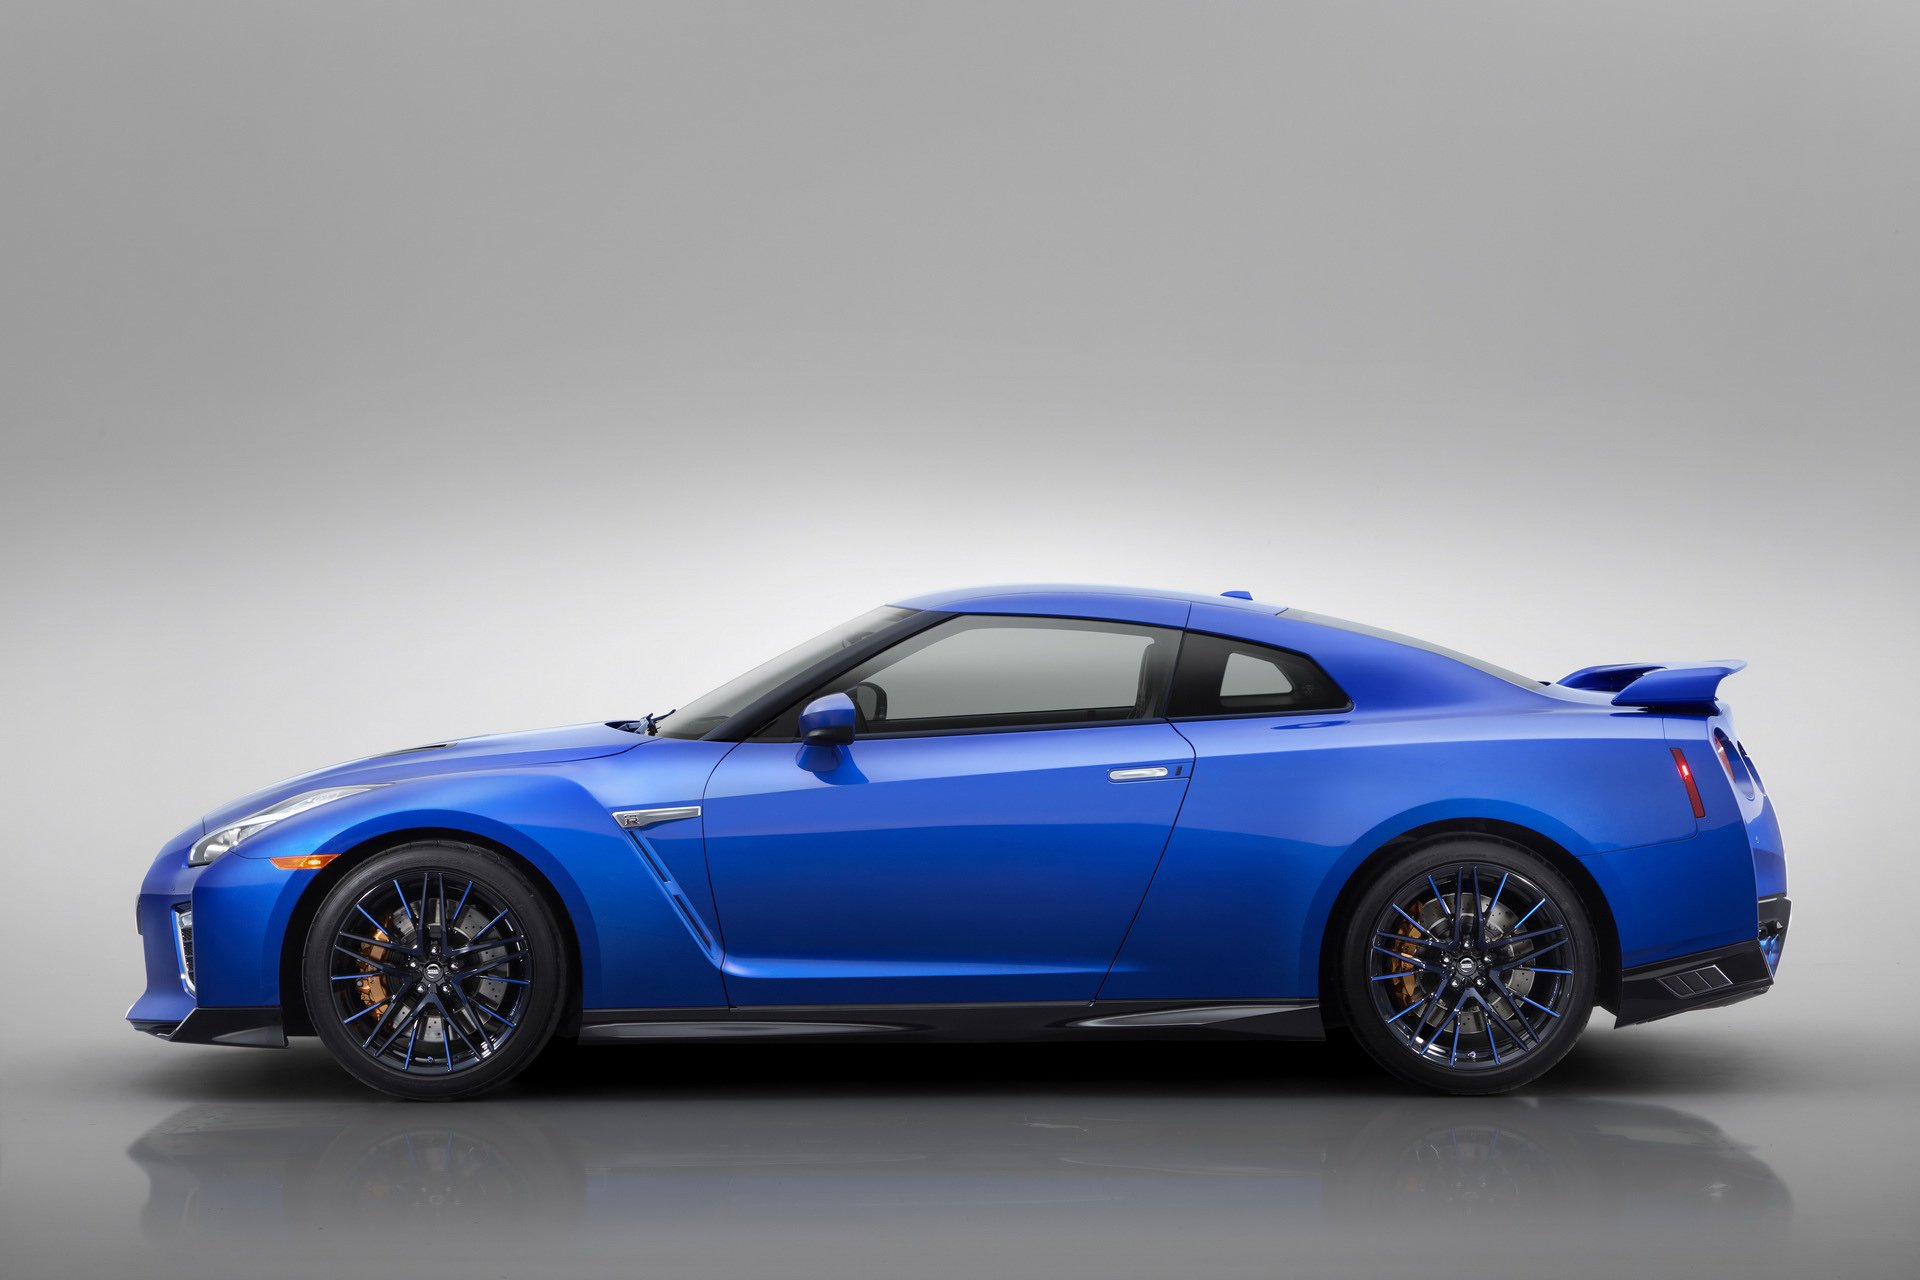 Nissan-GT-R-50th-Anniversary-Edition-16